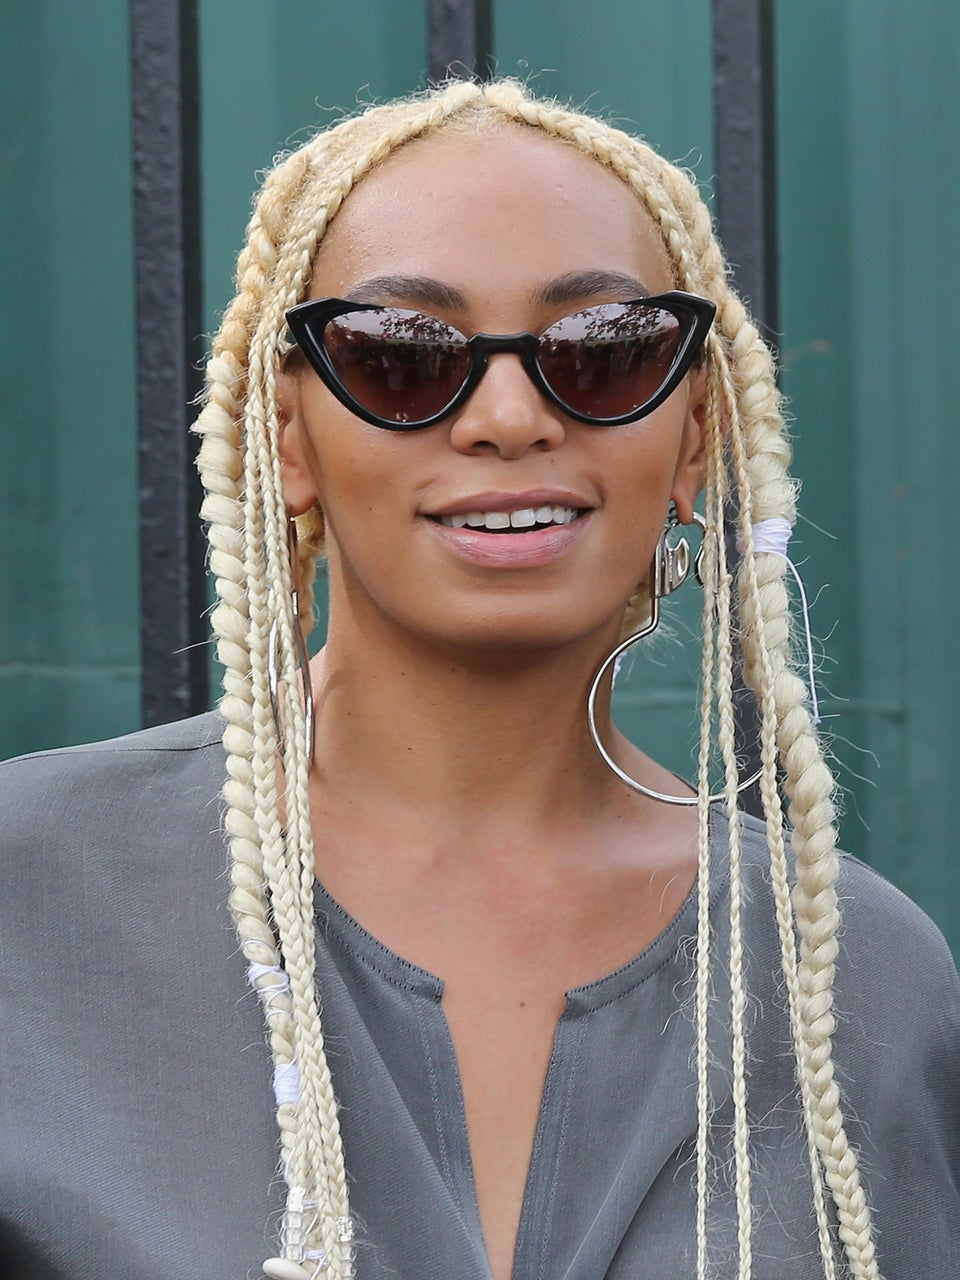 How to Dye Your Natural Hair Solange-Inspired Blonde Without Destroying Your Curl Pattern